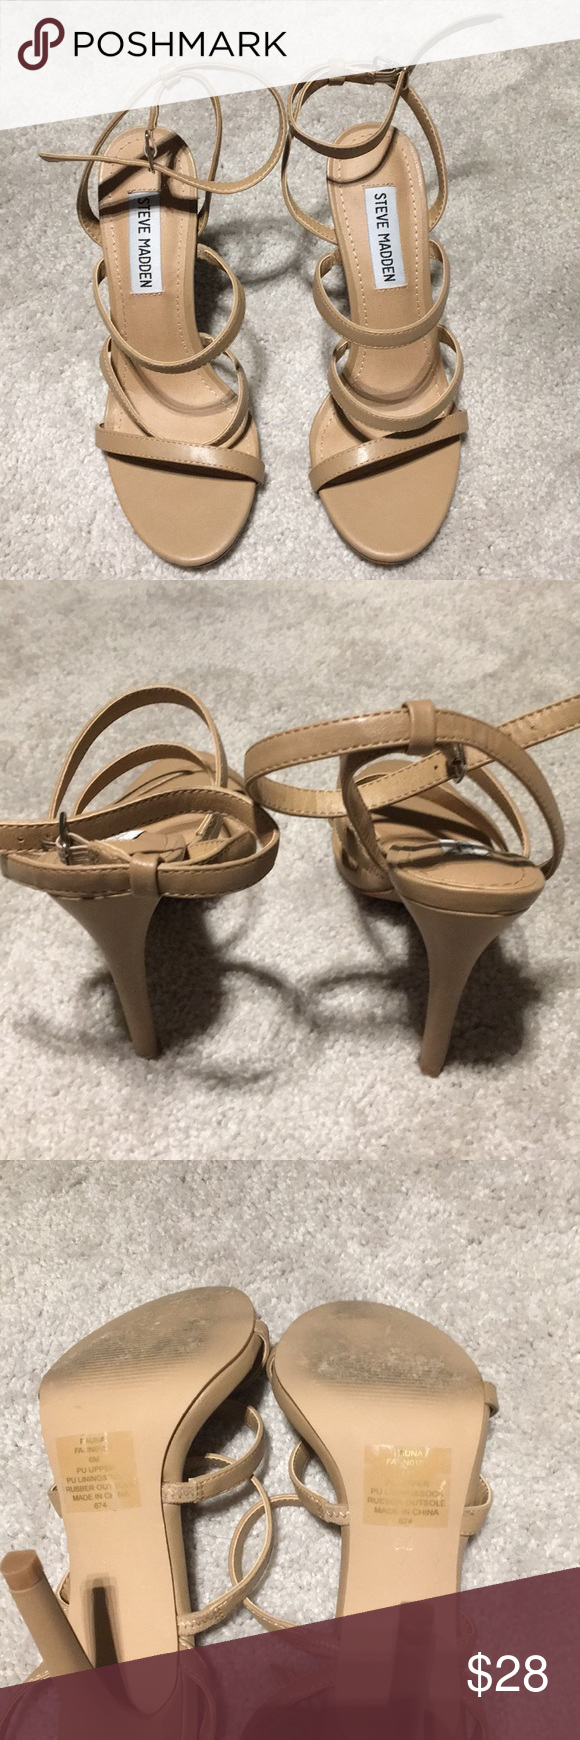 "097e6fad9b5 Like new Steve Madden Fauna heels Gorgeous beige Steve Madden strappy Fauna  sandals. 4"" heel. Strap around the ankle. Runs true to size."